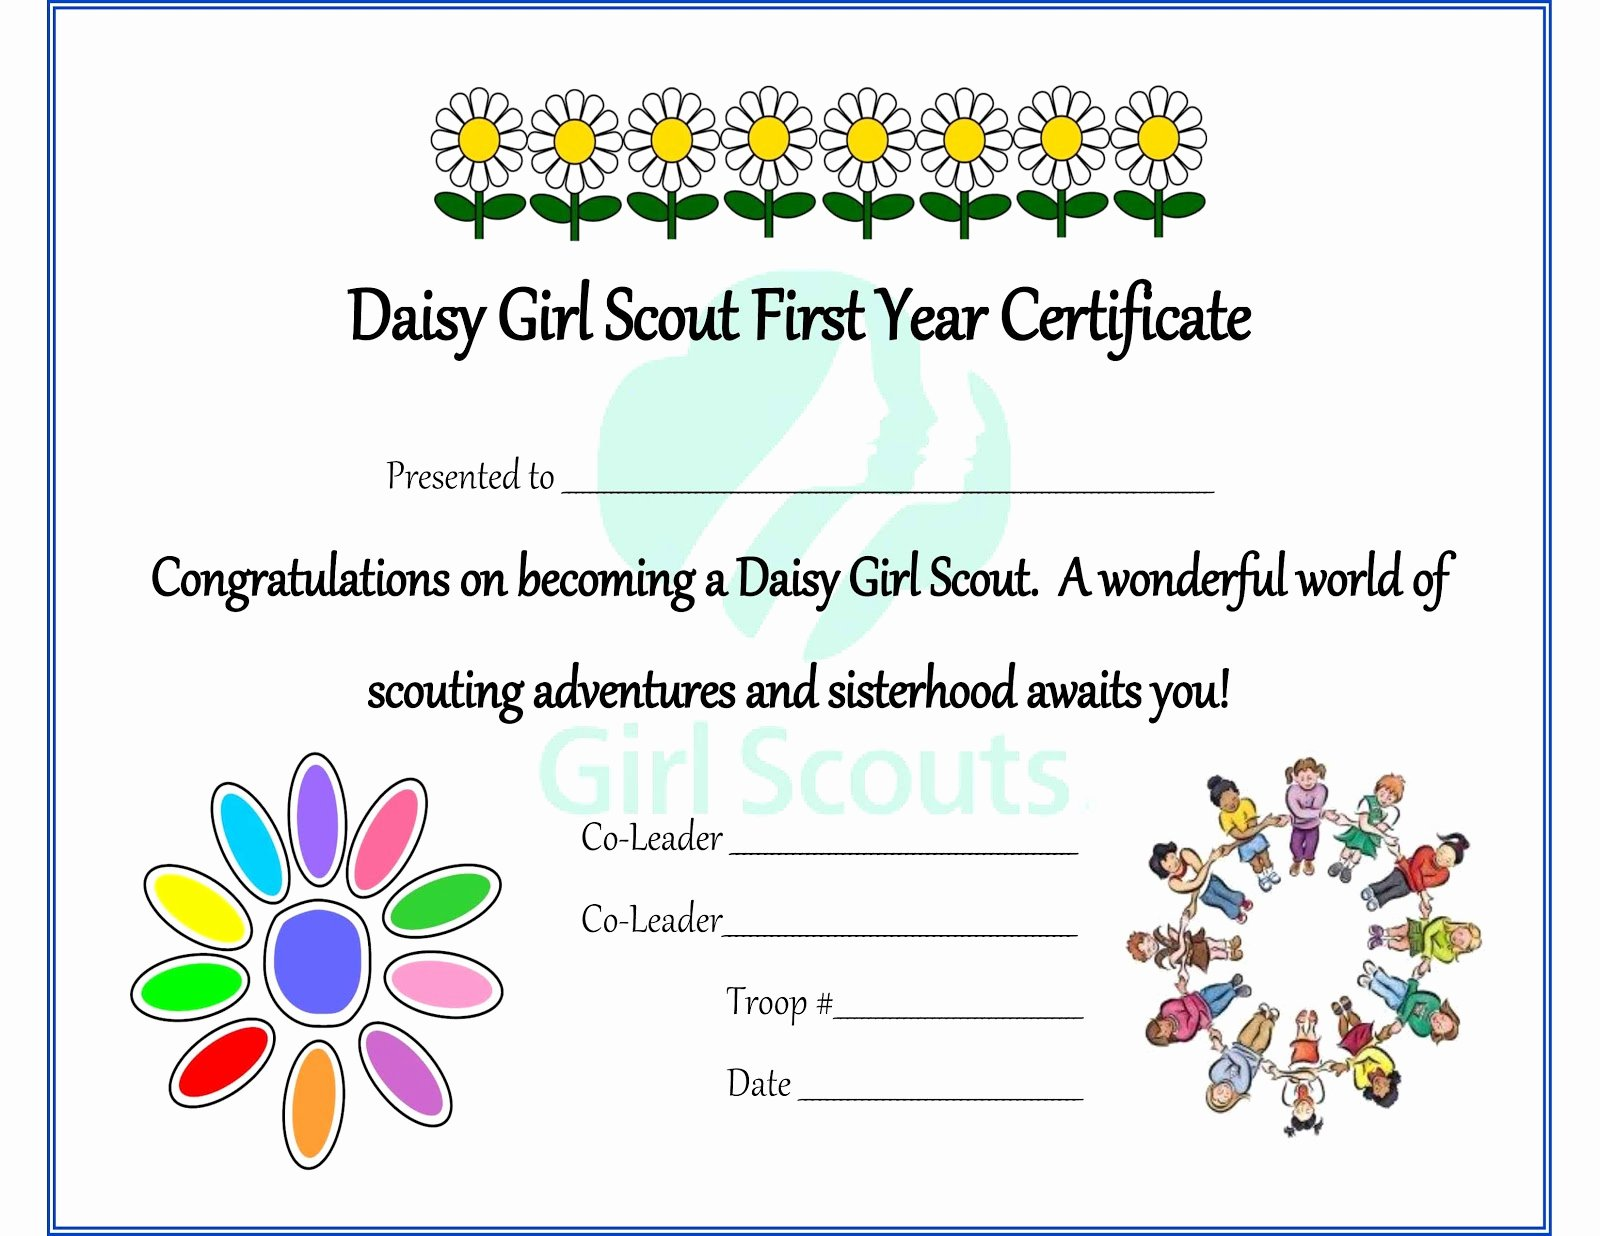 Girl Scout Daisy Certificate Template Best Of Girl Scouts 101